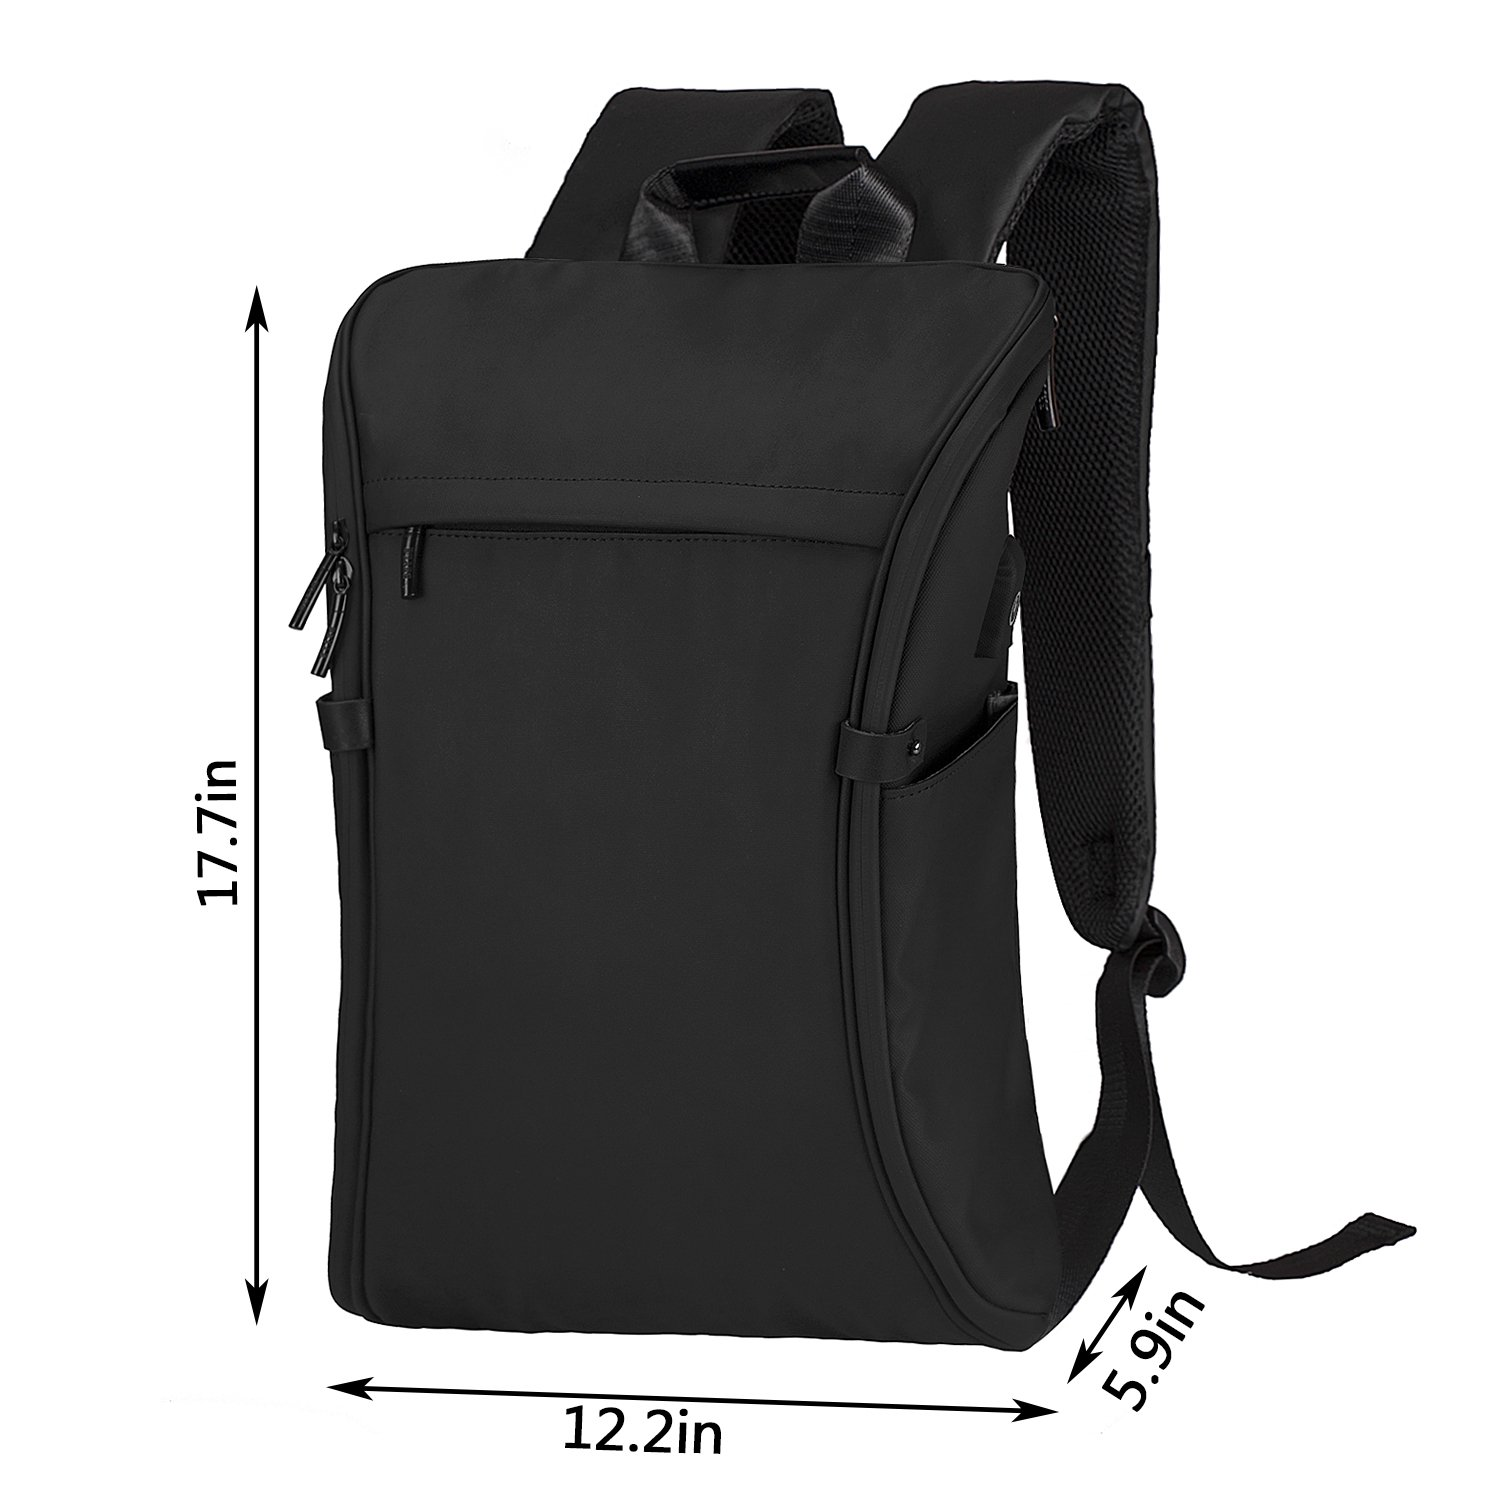 Business Laptop Backpack, Becky Travel College School Computer Bag with USB Charging Port, Anti-Theft Water Resistant BookBag for Men & Women Fits 15.6 Inch Notebook, Black by BECKY (Image #2)